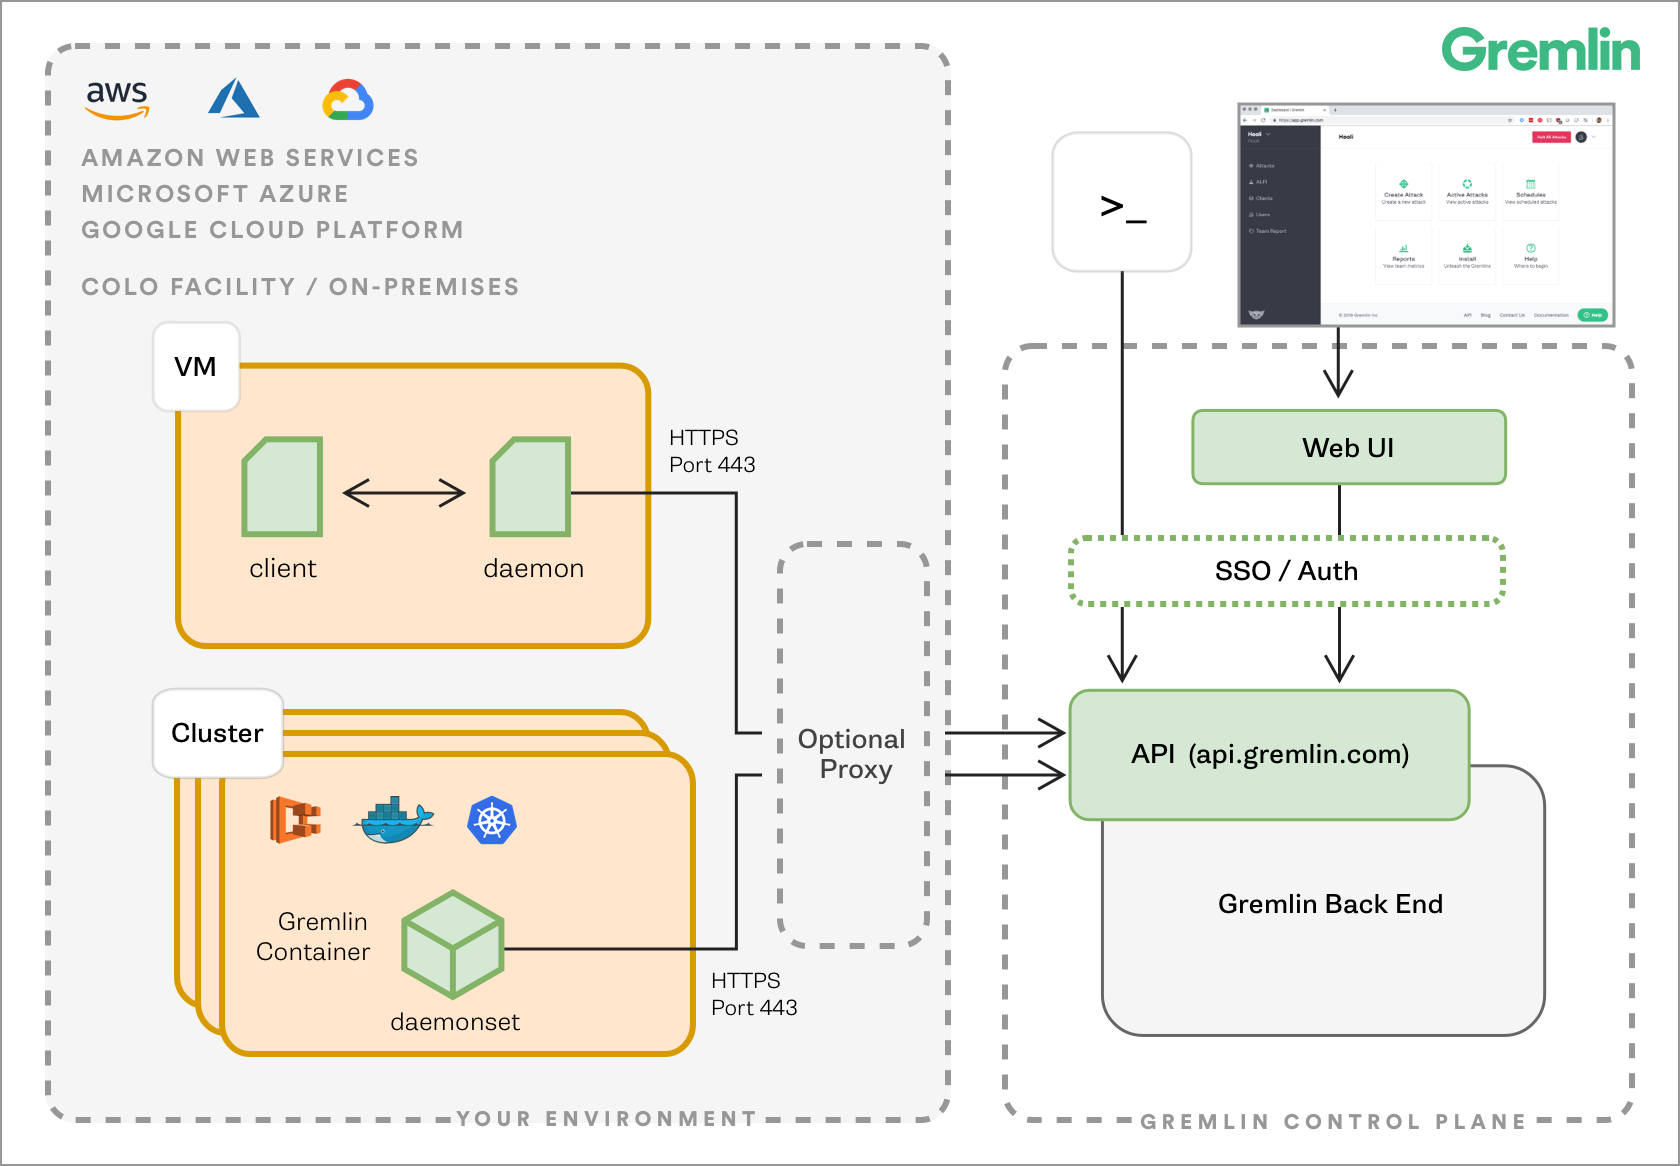 An architectural diagram showing multiple clouds and vendors and how Gremlin operates with them